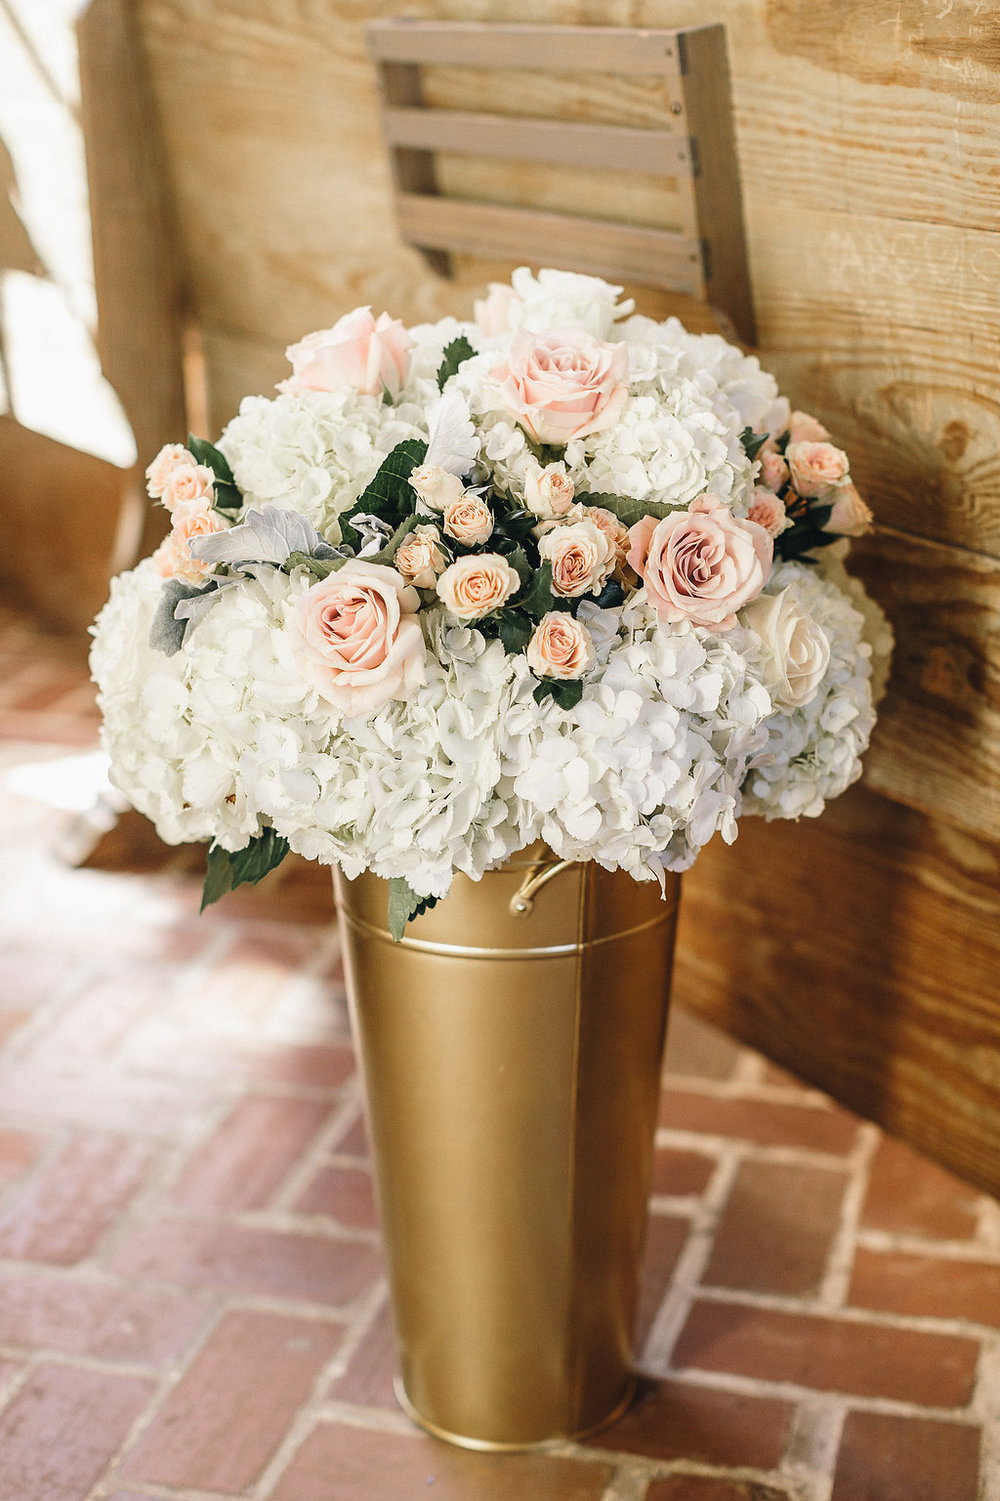 White hydrangea bouquet at Savannah GA Wedding ceremony at Bethesda Academy's Whitefield Chapel by Mackensey Alexander Photography